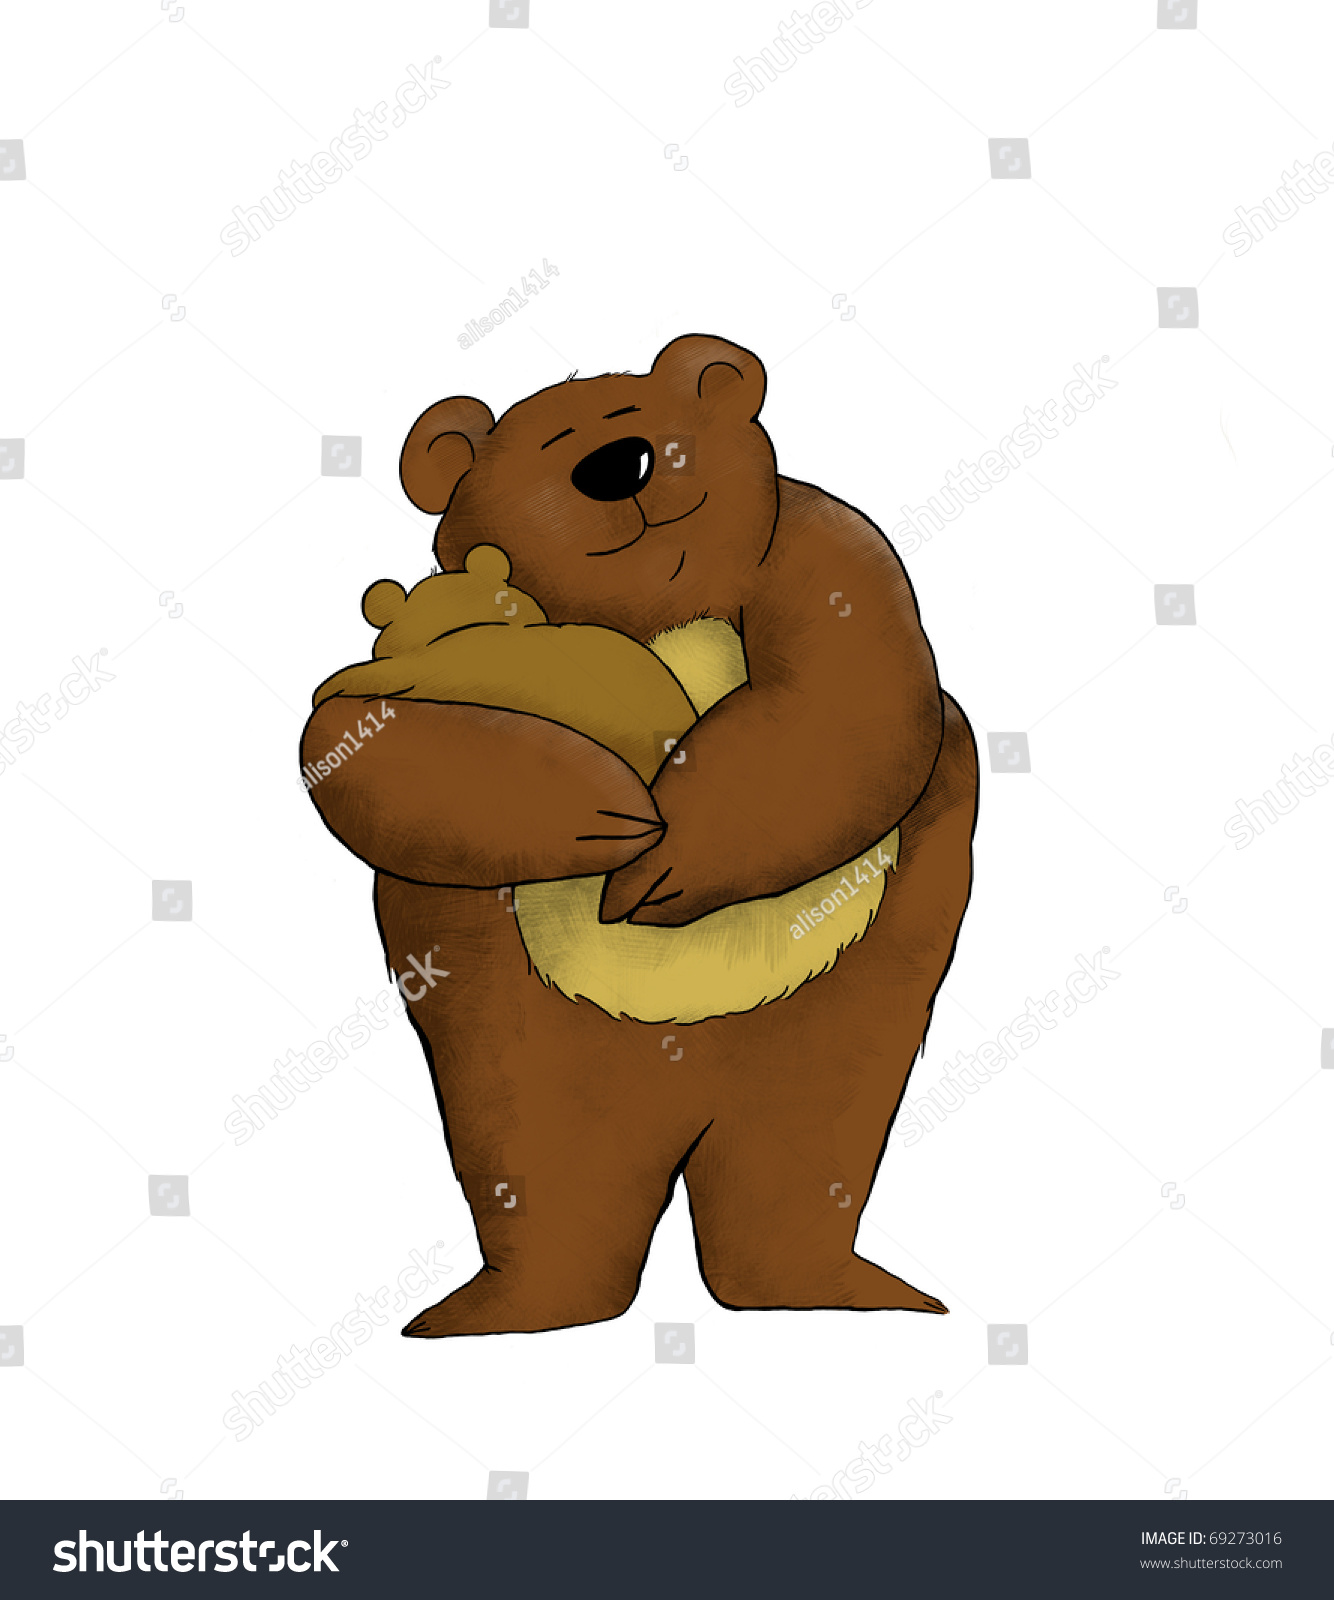 Cartoon Of A Mother Bear Holding Her Baby Stock Photo